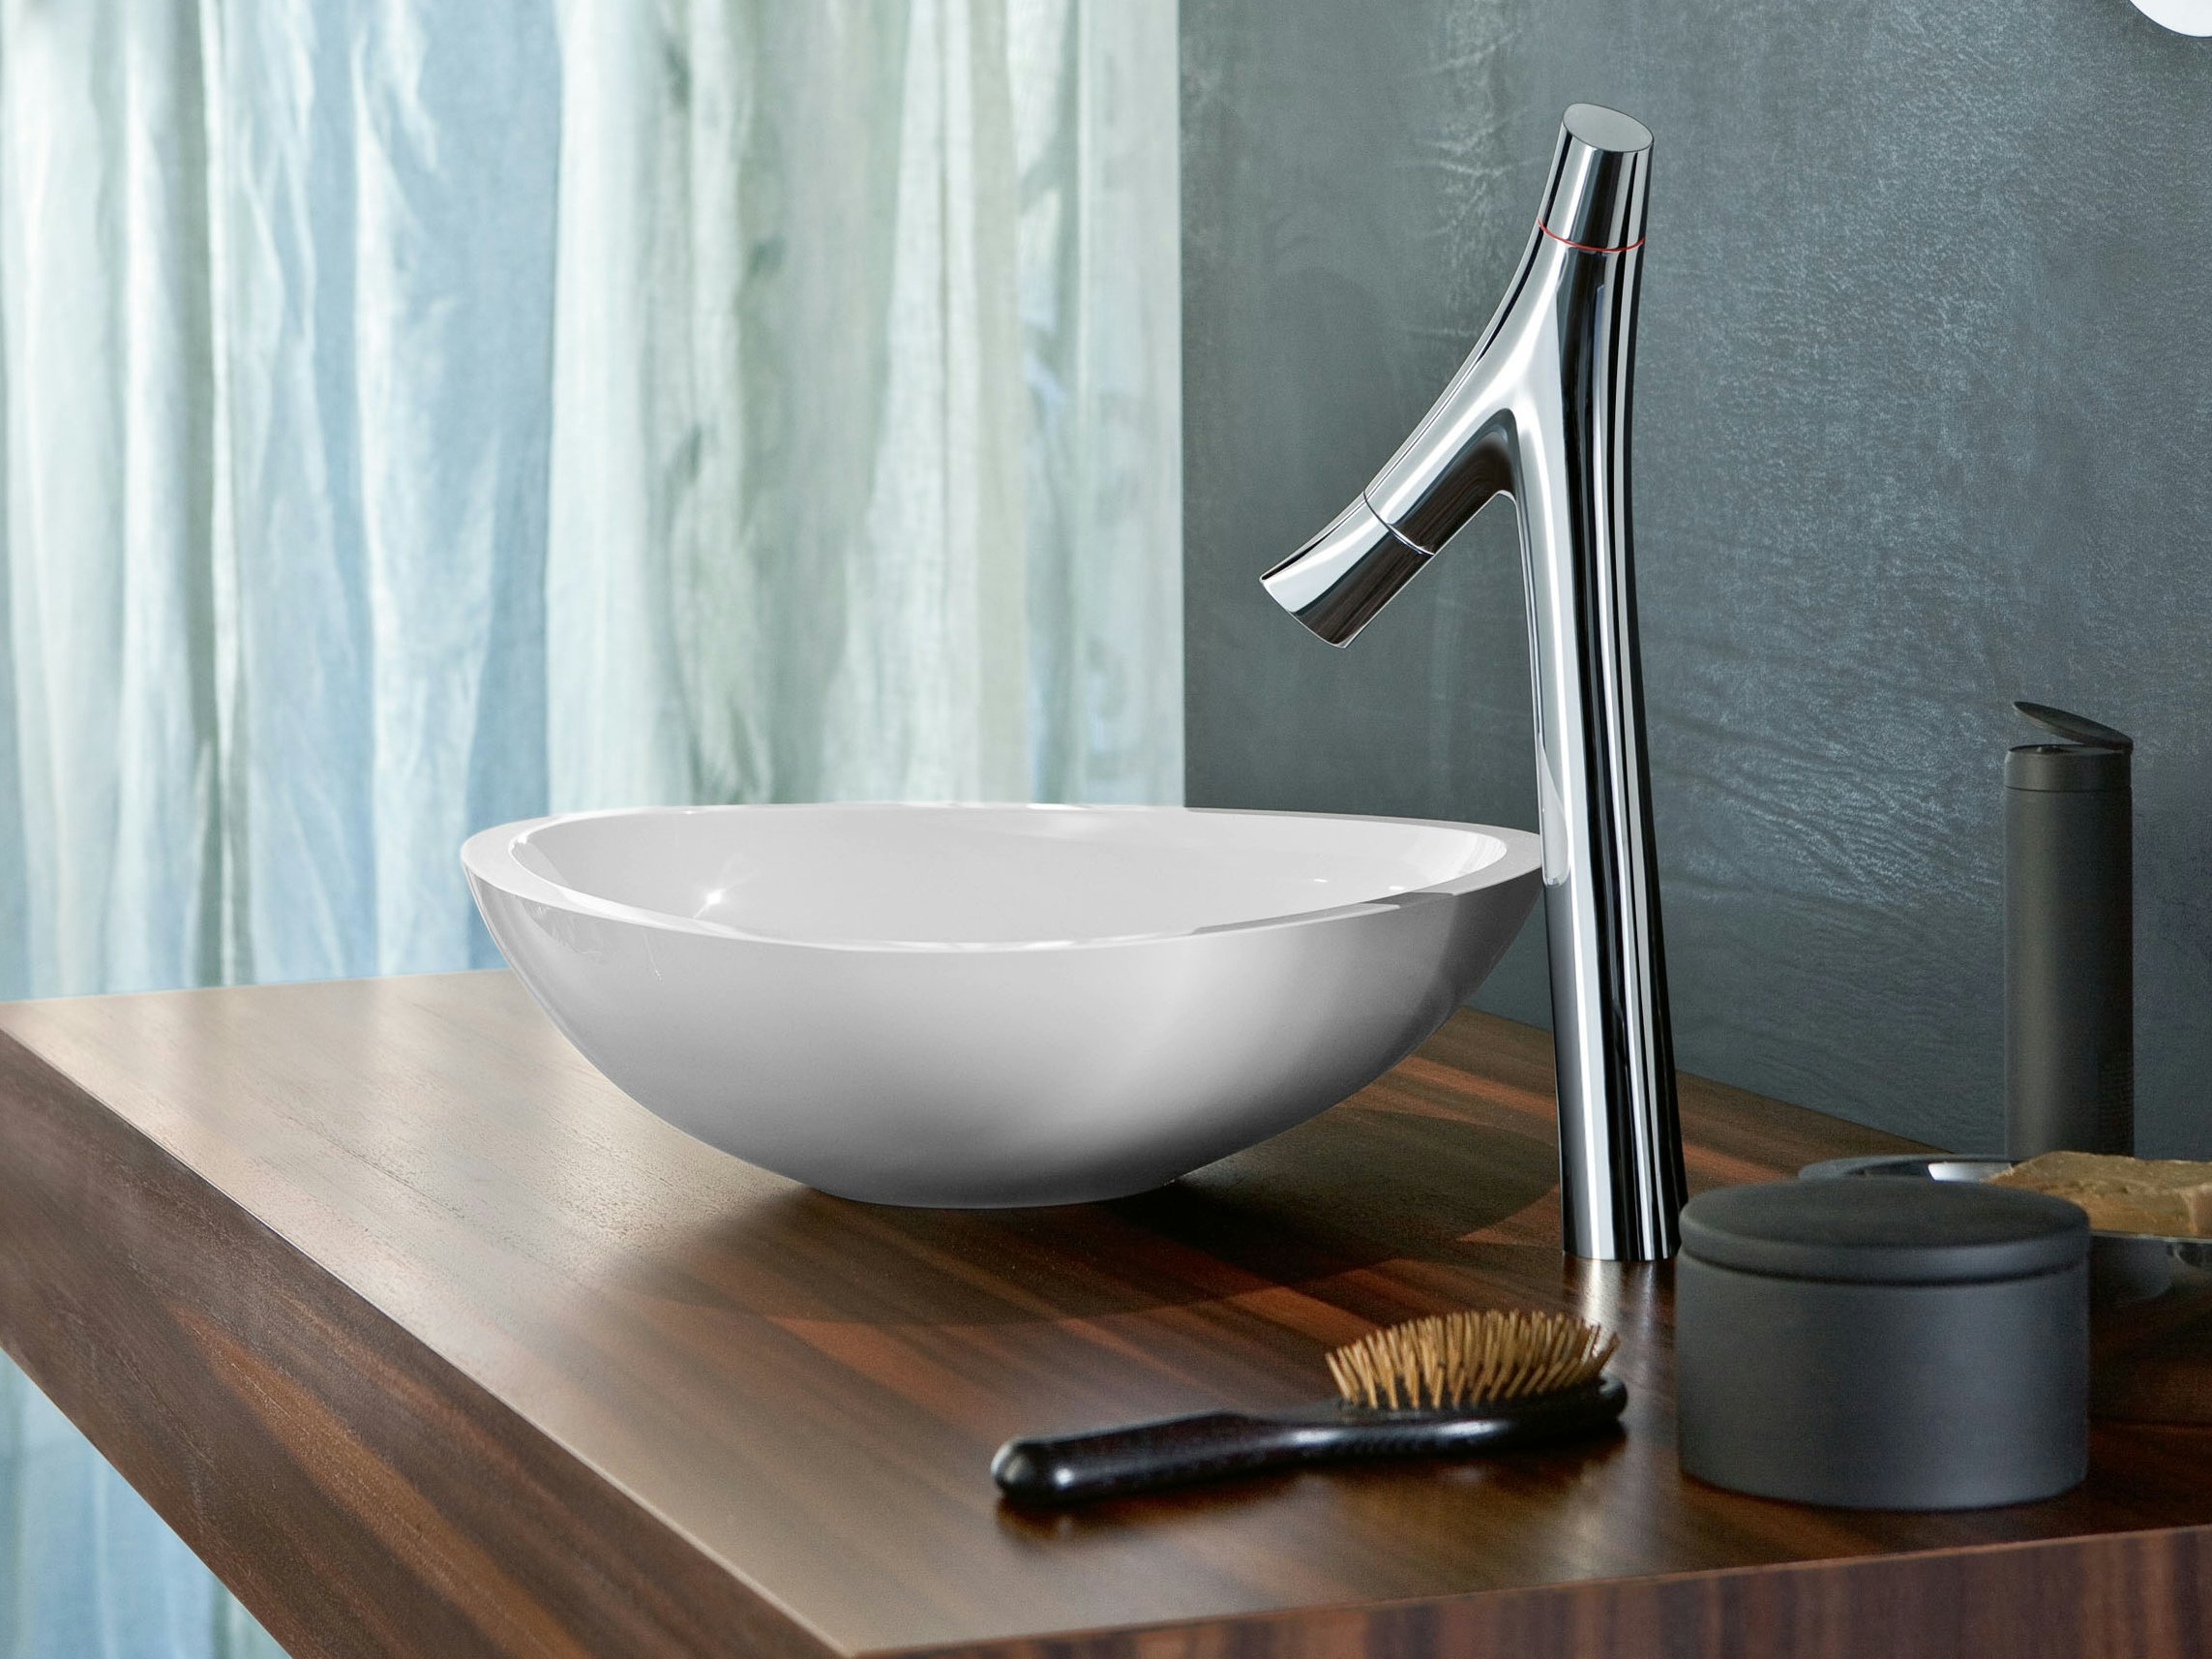 AXOR STARCK ORGANIC Countertop Washbasin Mixer By HANSGROHE Design Philippe S